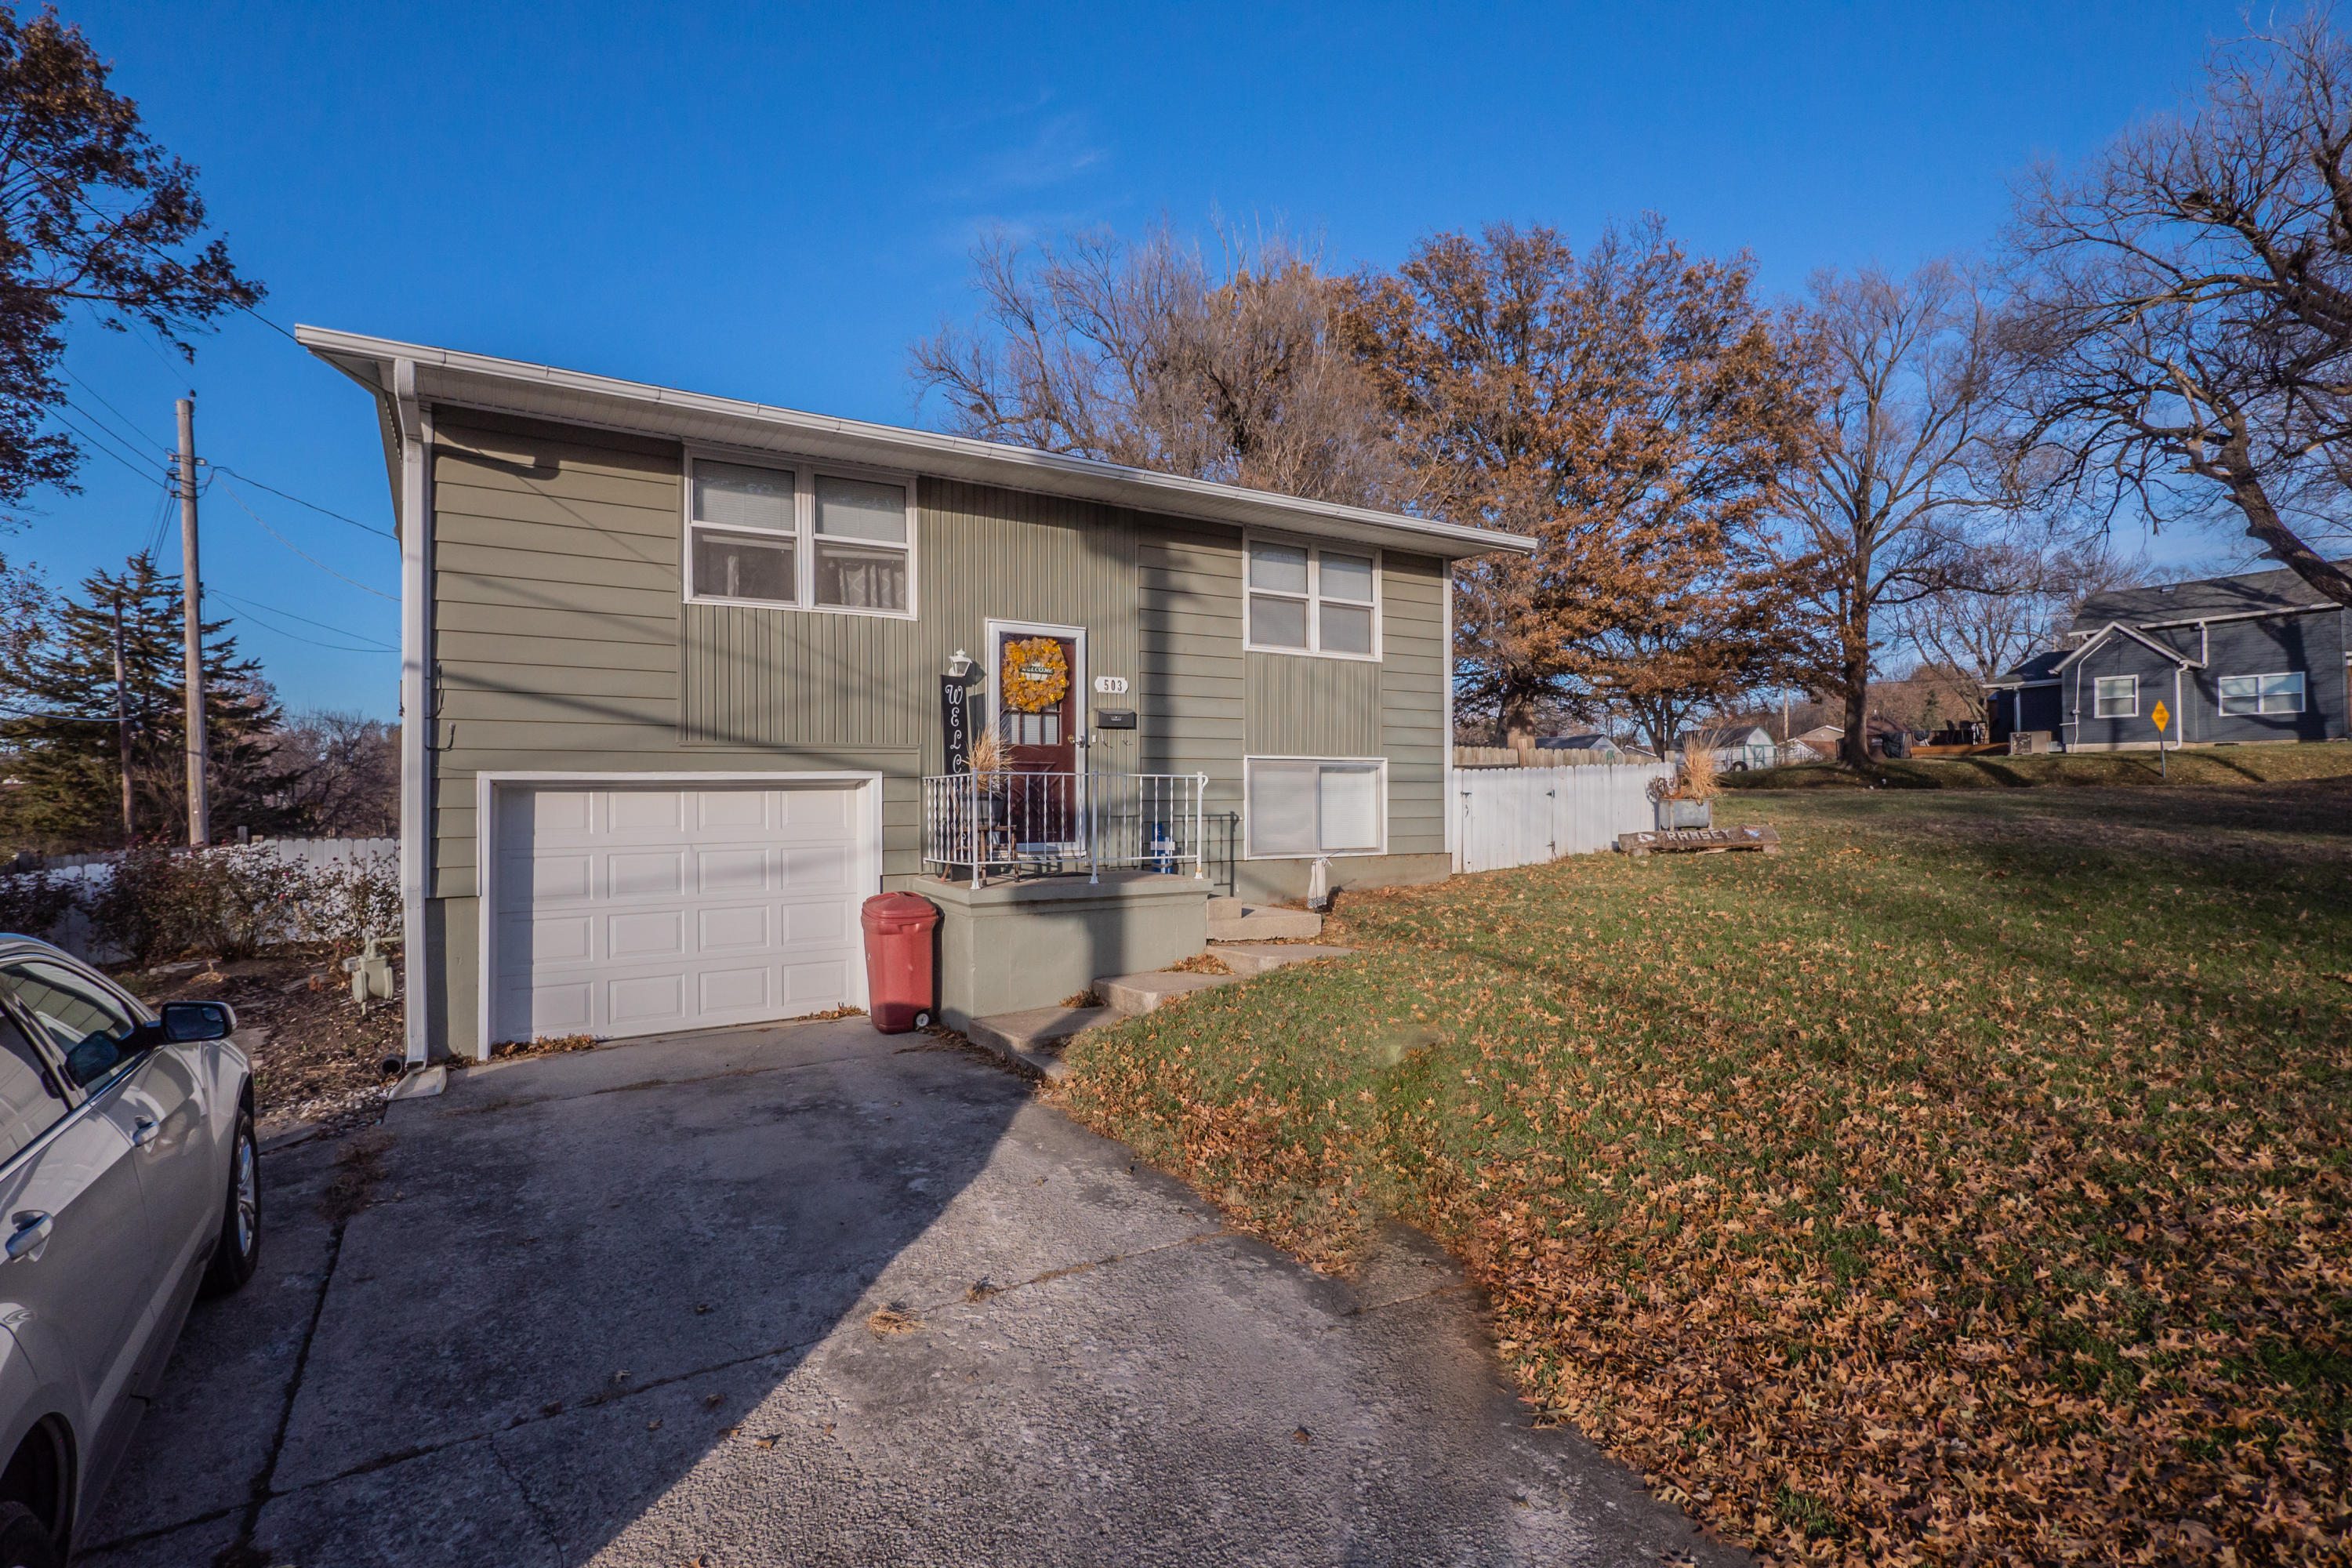 503 W HALSEY ST, Maryville, Missouri 64468, 3 Bedrooms Bedrooms, ,2 BathroomsBathrooms,Residential,HALSEY,4585